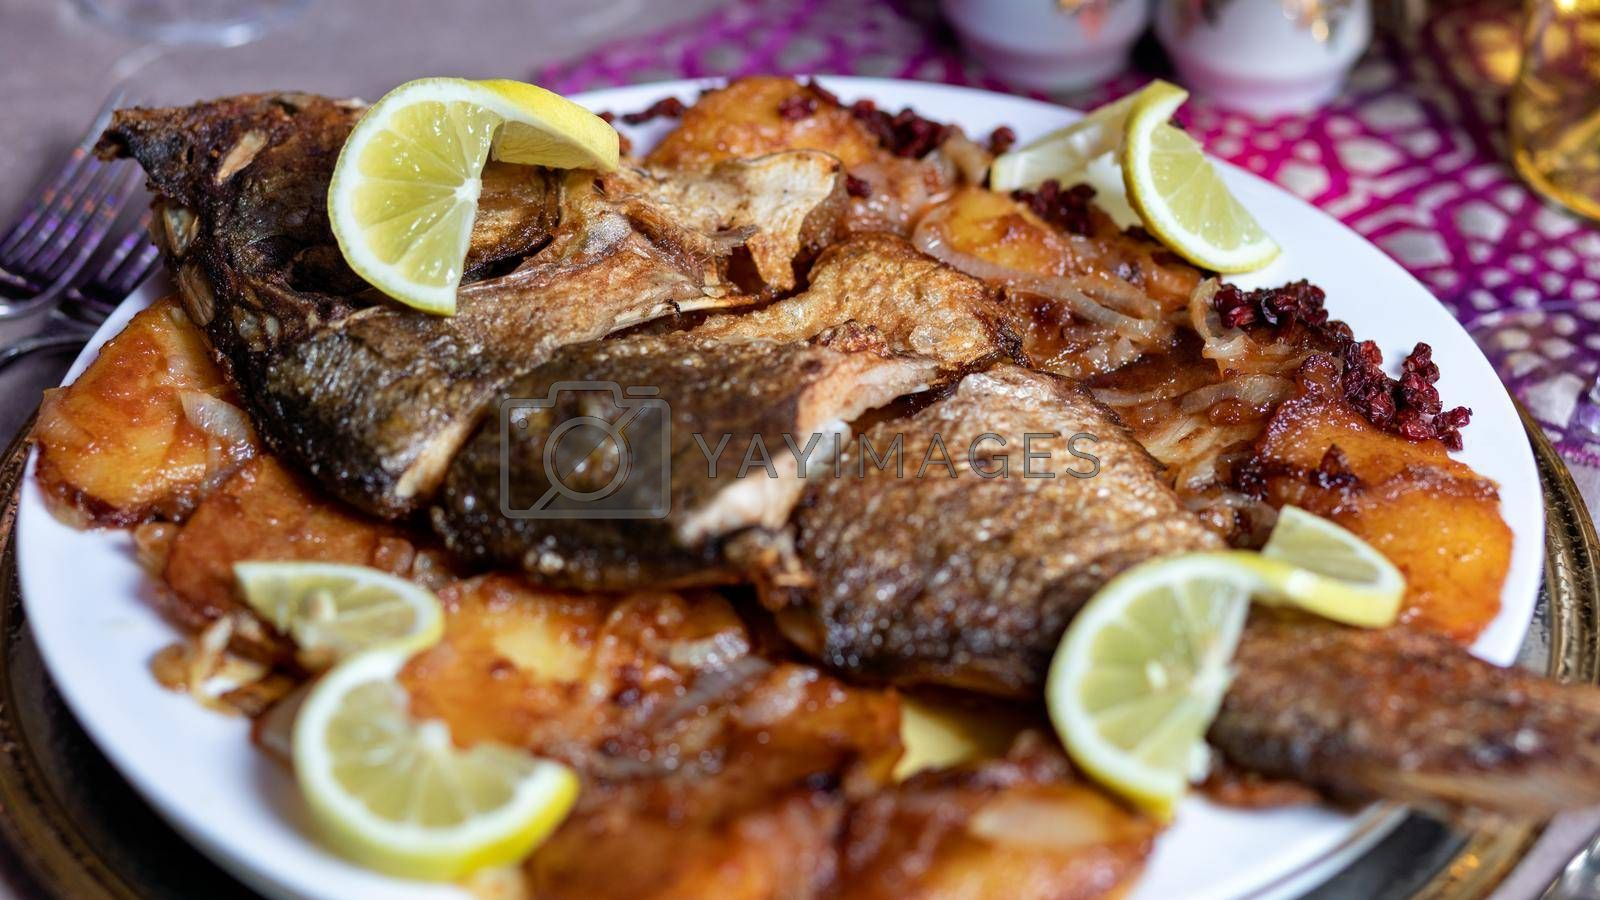 Grilled whole fish with a lemon close up